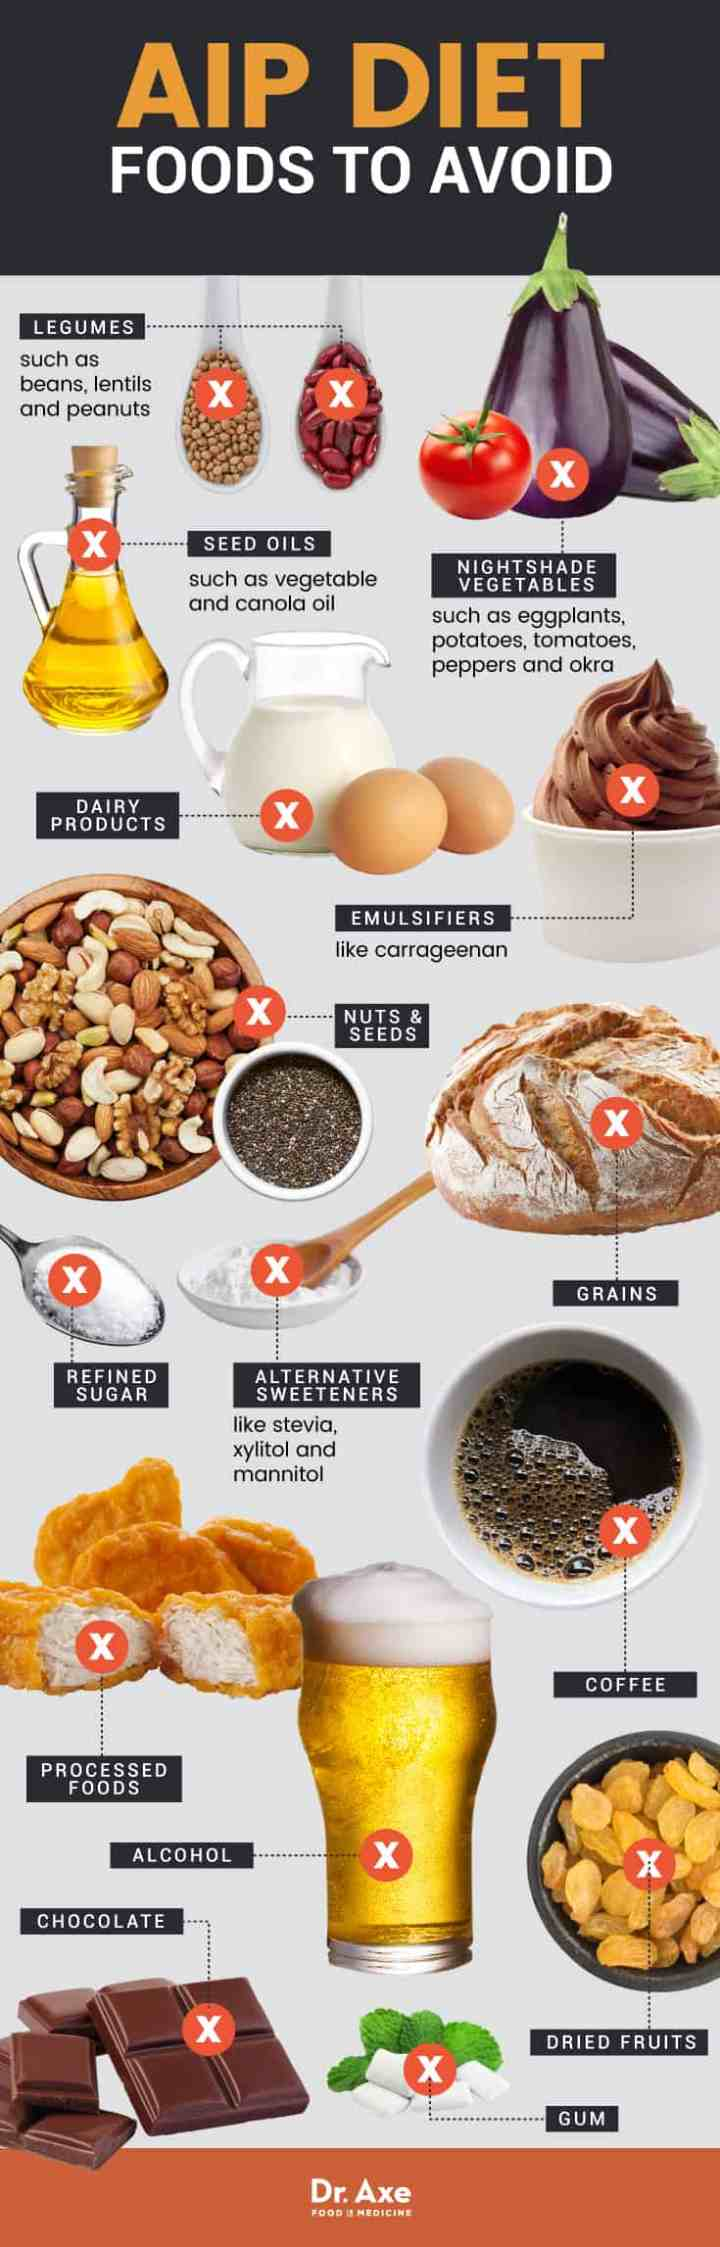 AIP diet foods to avoid - Dr. Axe